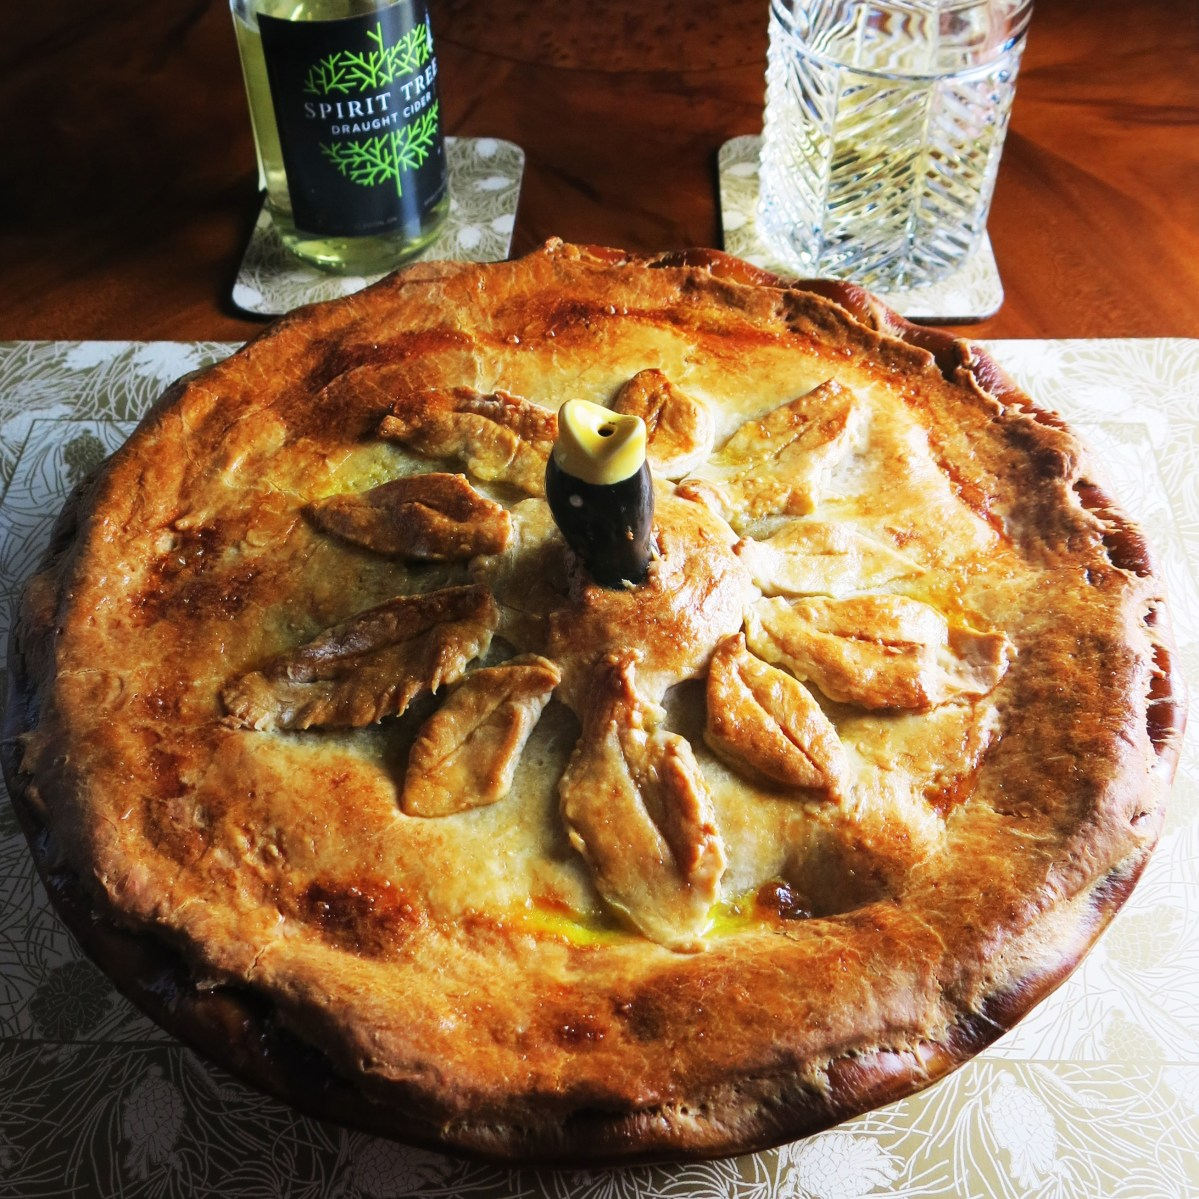 PORK, APPLE AND CIDER PIE